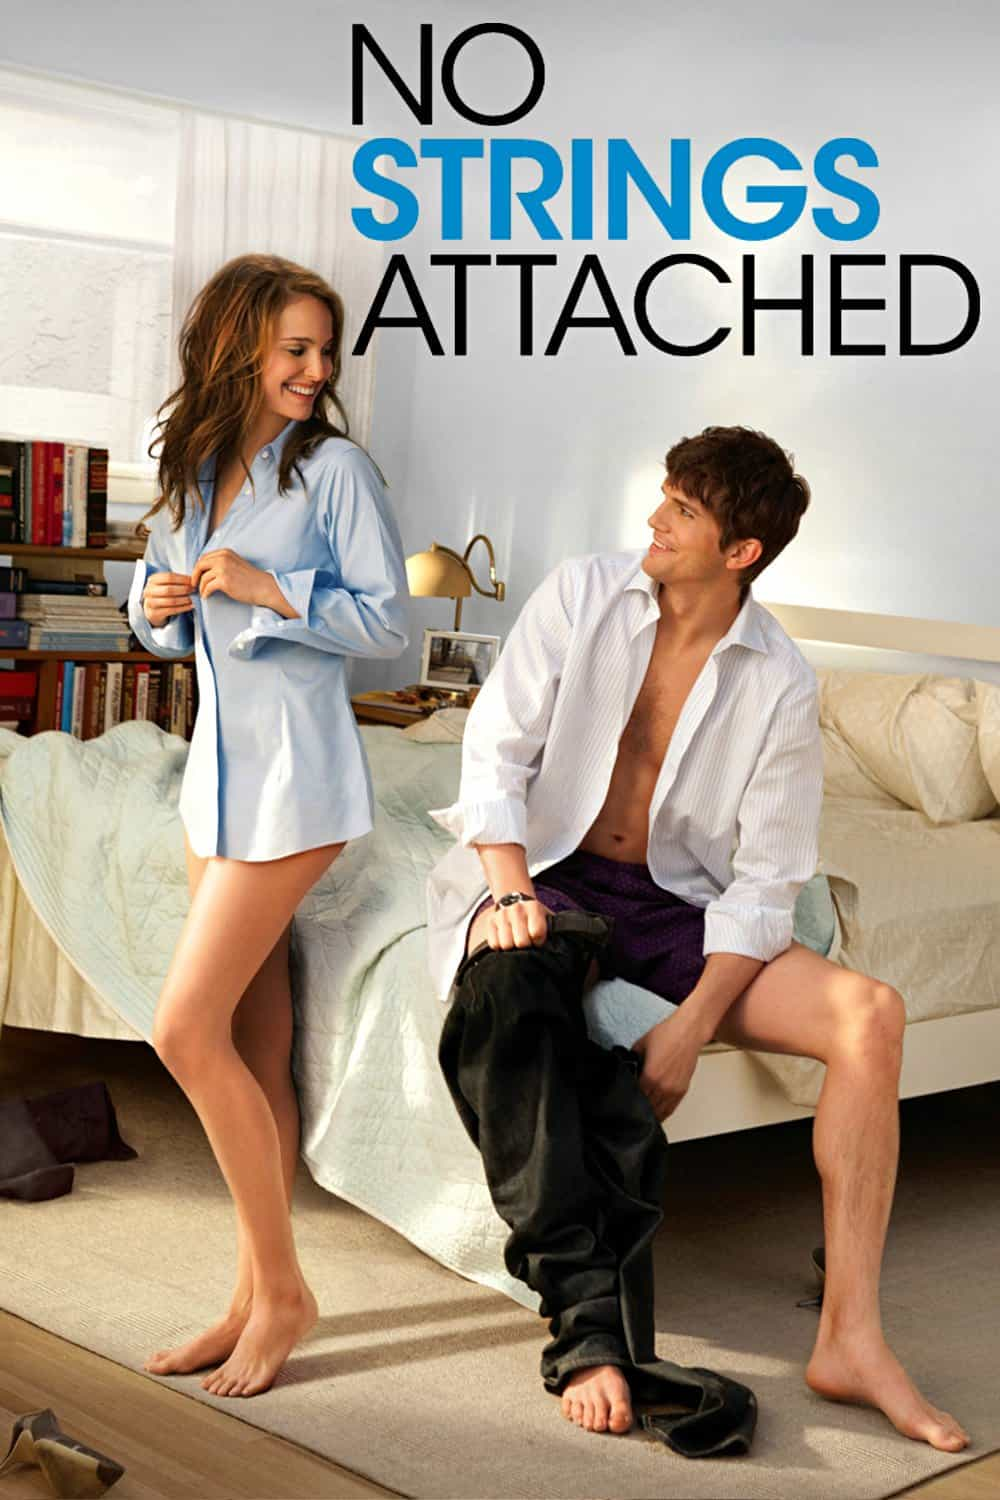 No Strings Attached, 2011